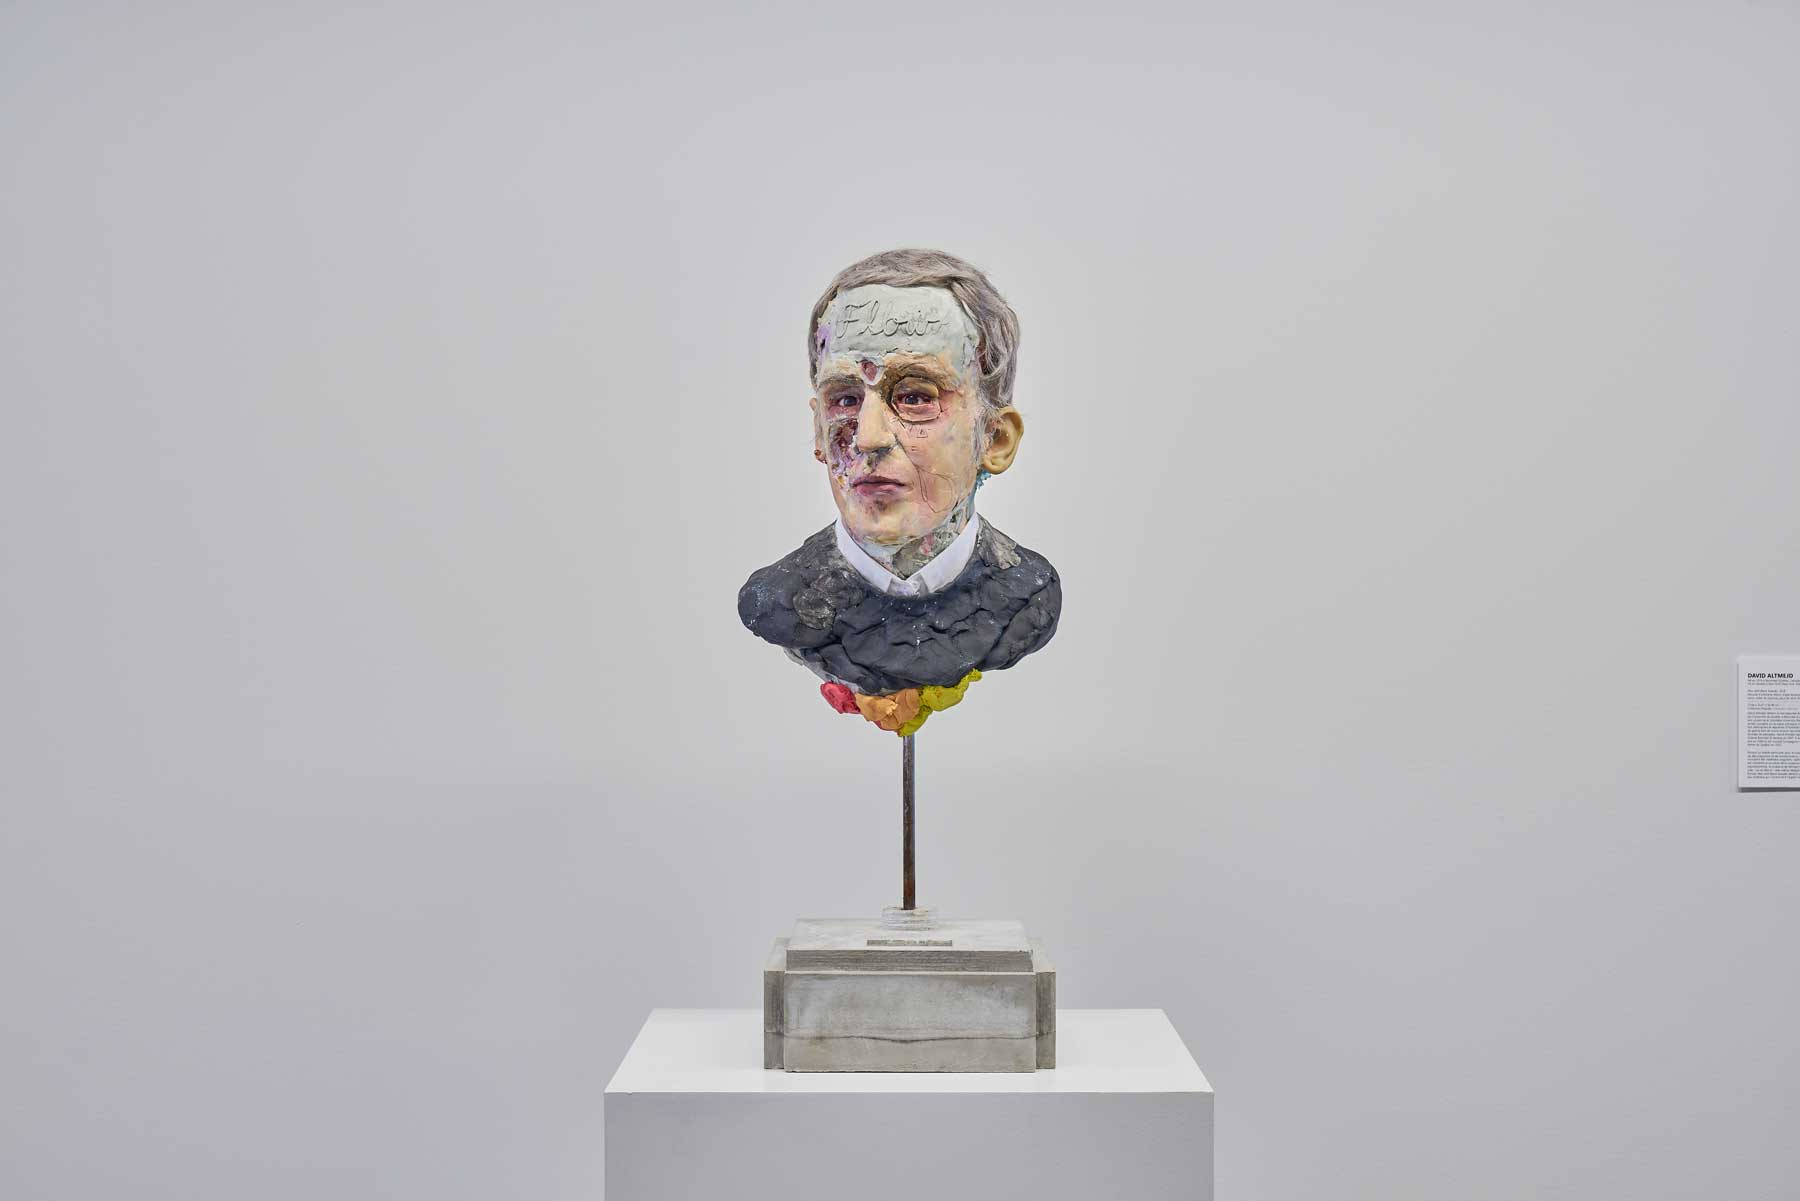 "David Altmejd ,  Man with Black Sweater , 2018, Urethane foam, concrete, epoxy clay, resin, epoxy gel, syntheric hair, steel, acrylic paint, quartz, graphite, glass paint, shir collar, glass eyes, copper wire bead, rhinestone, MSA varnish, 29"" x 10 ½"" x 12"" (73,7 x 26,7 x 30,5 cm)"